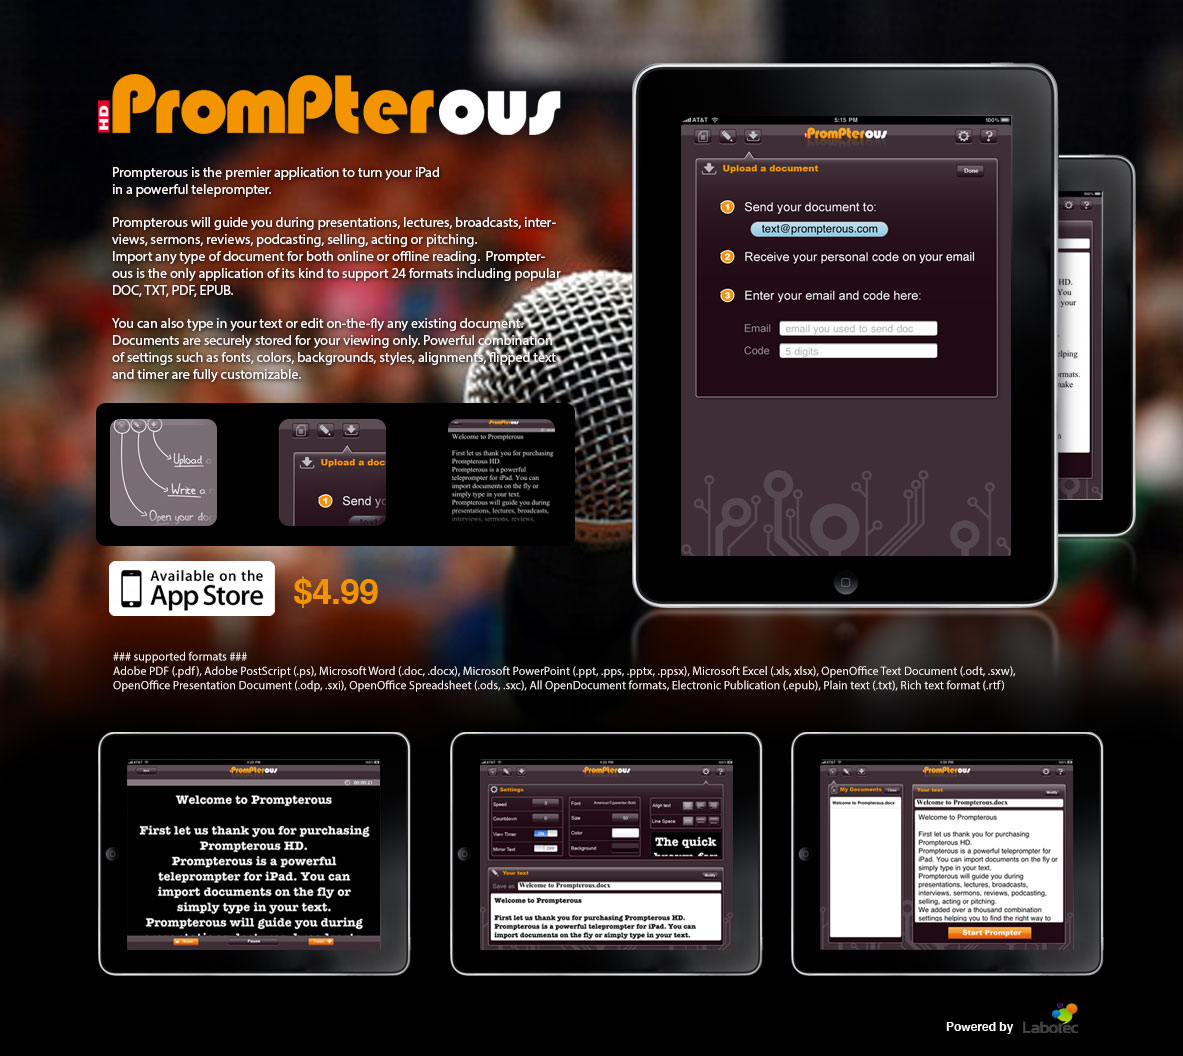 prompterous-homepage